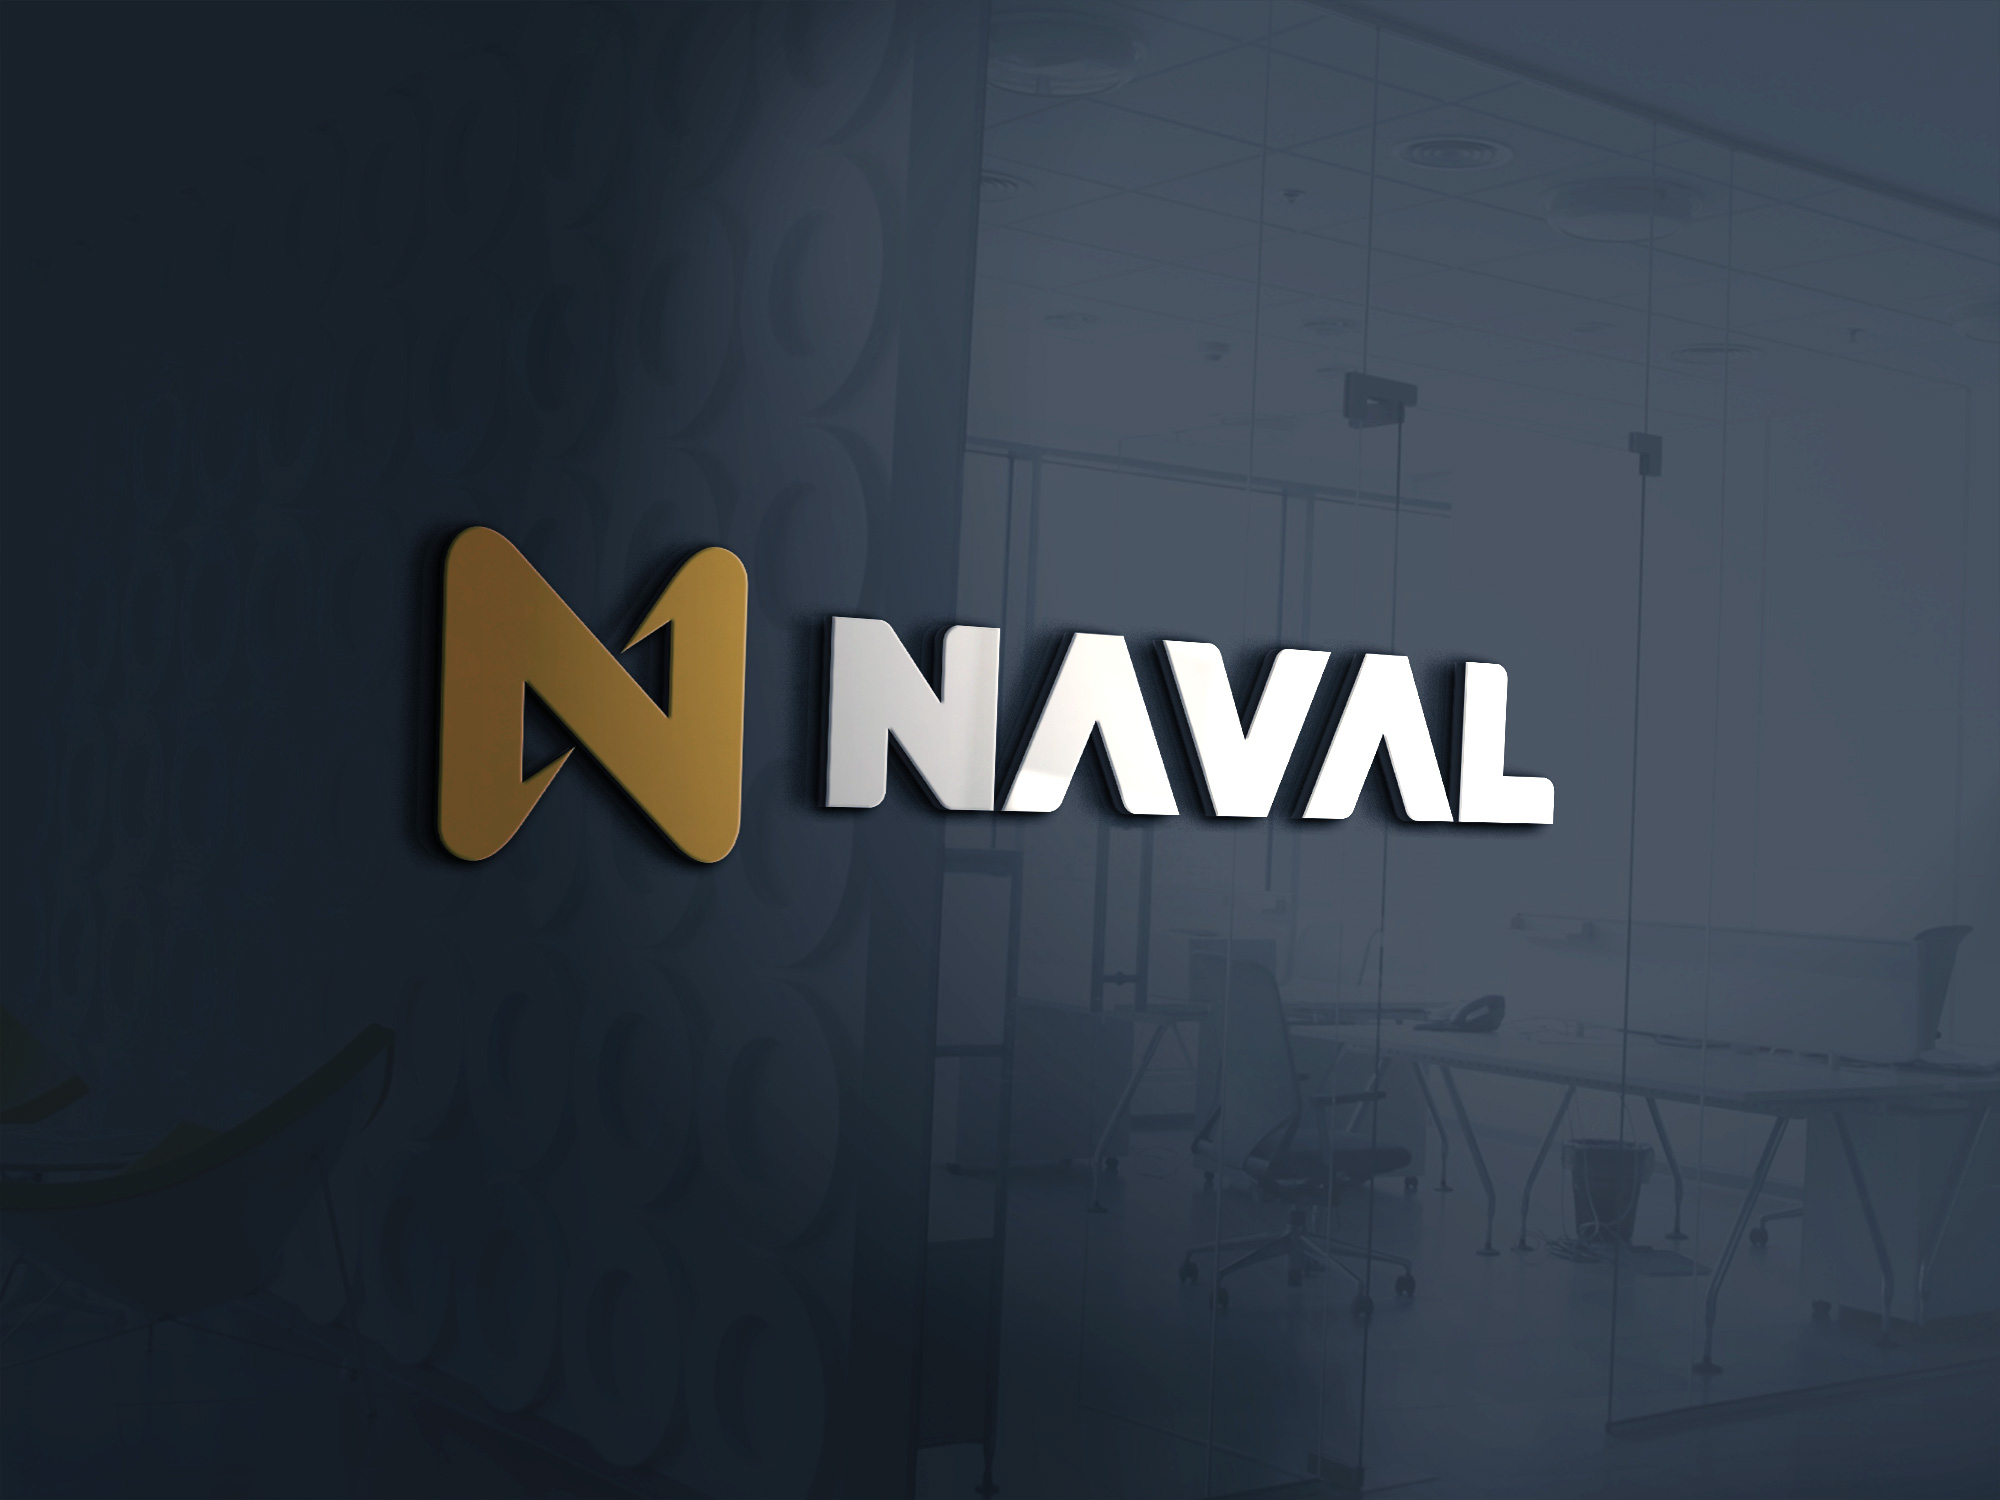 Naval Wall